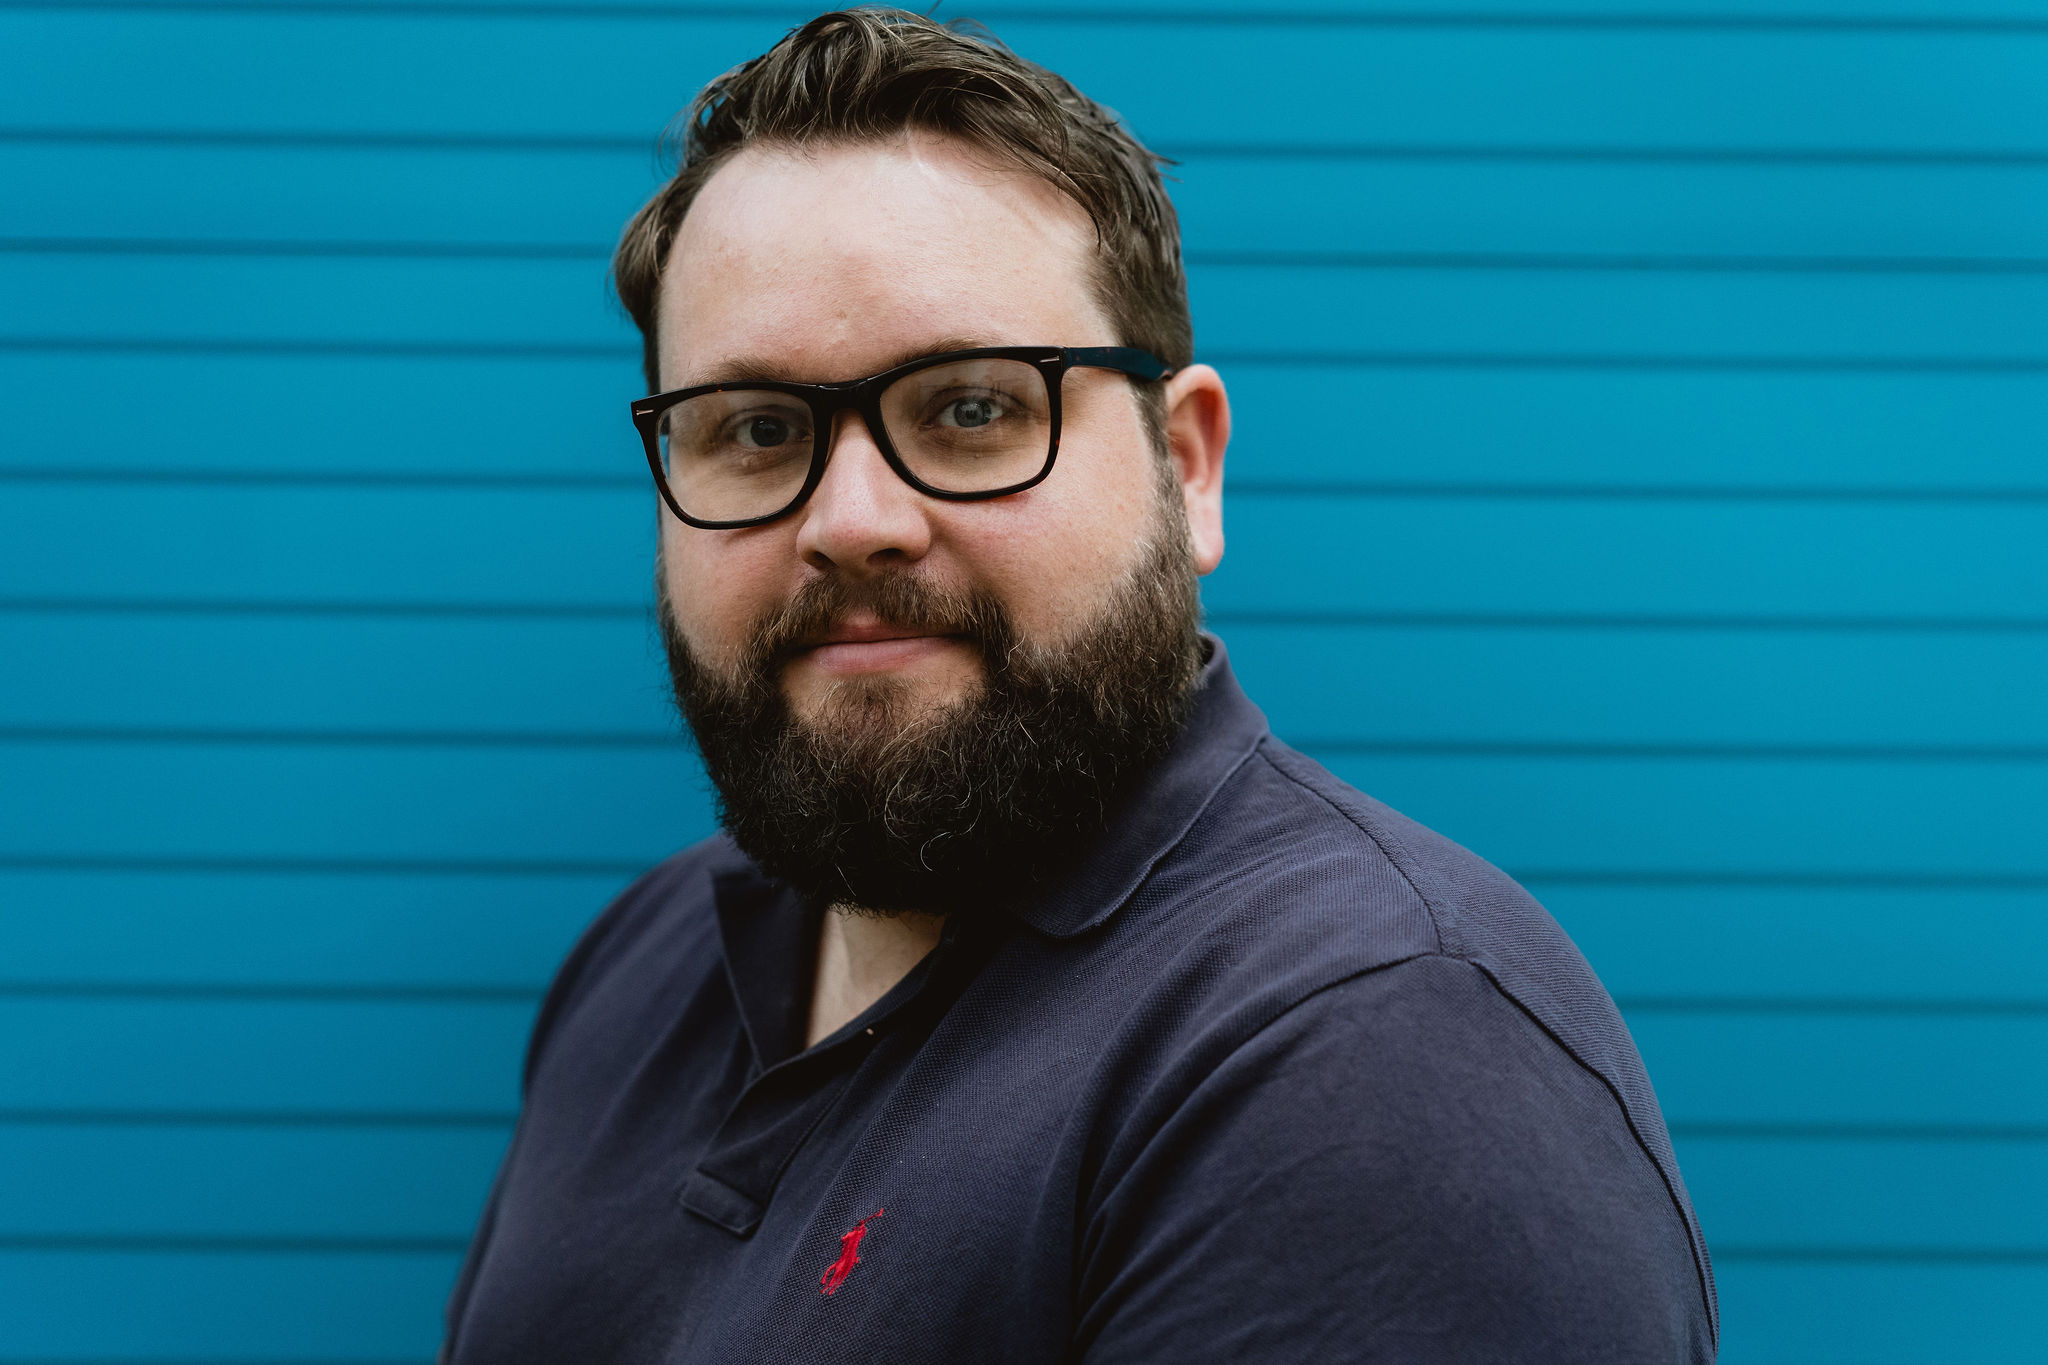 James Dale - Commercial Director